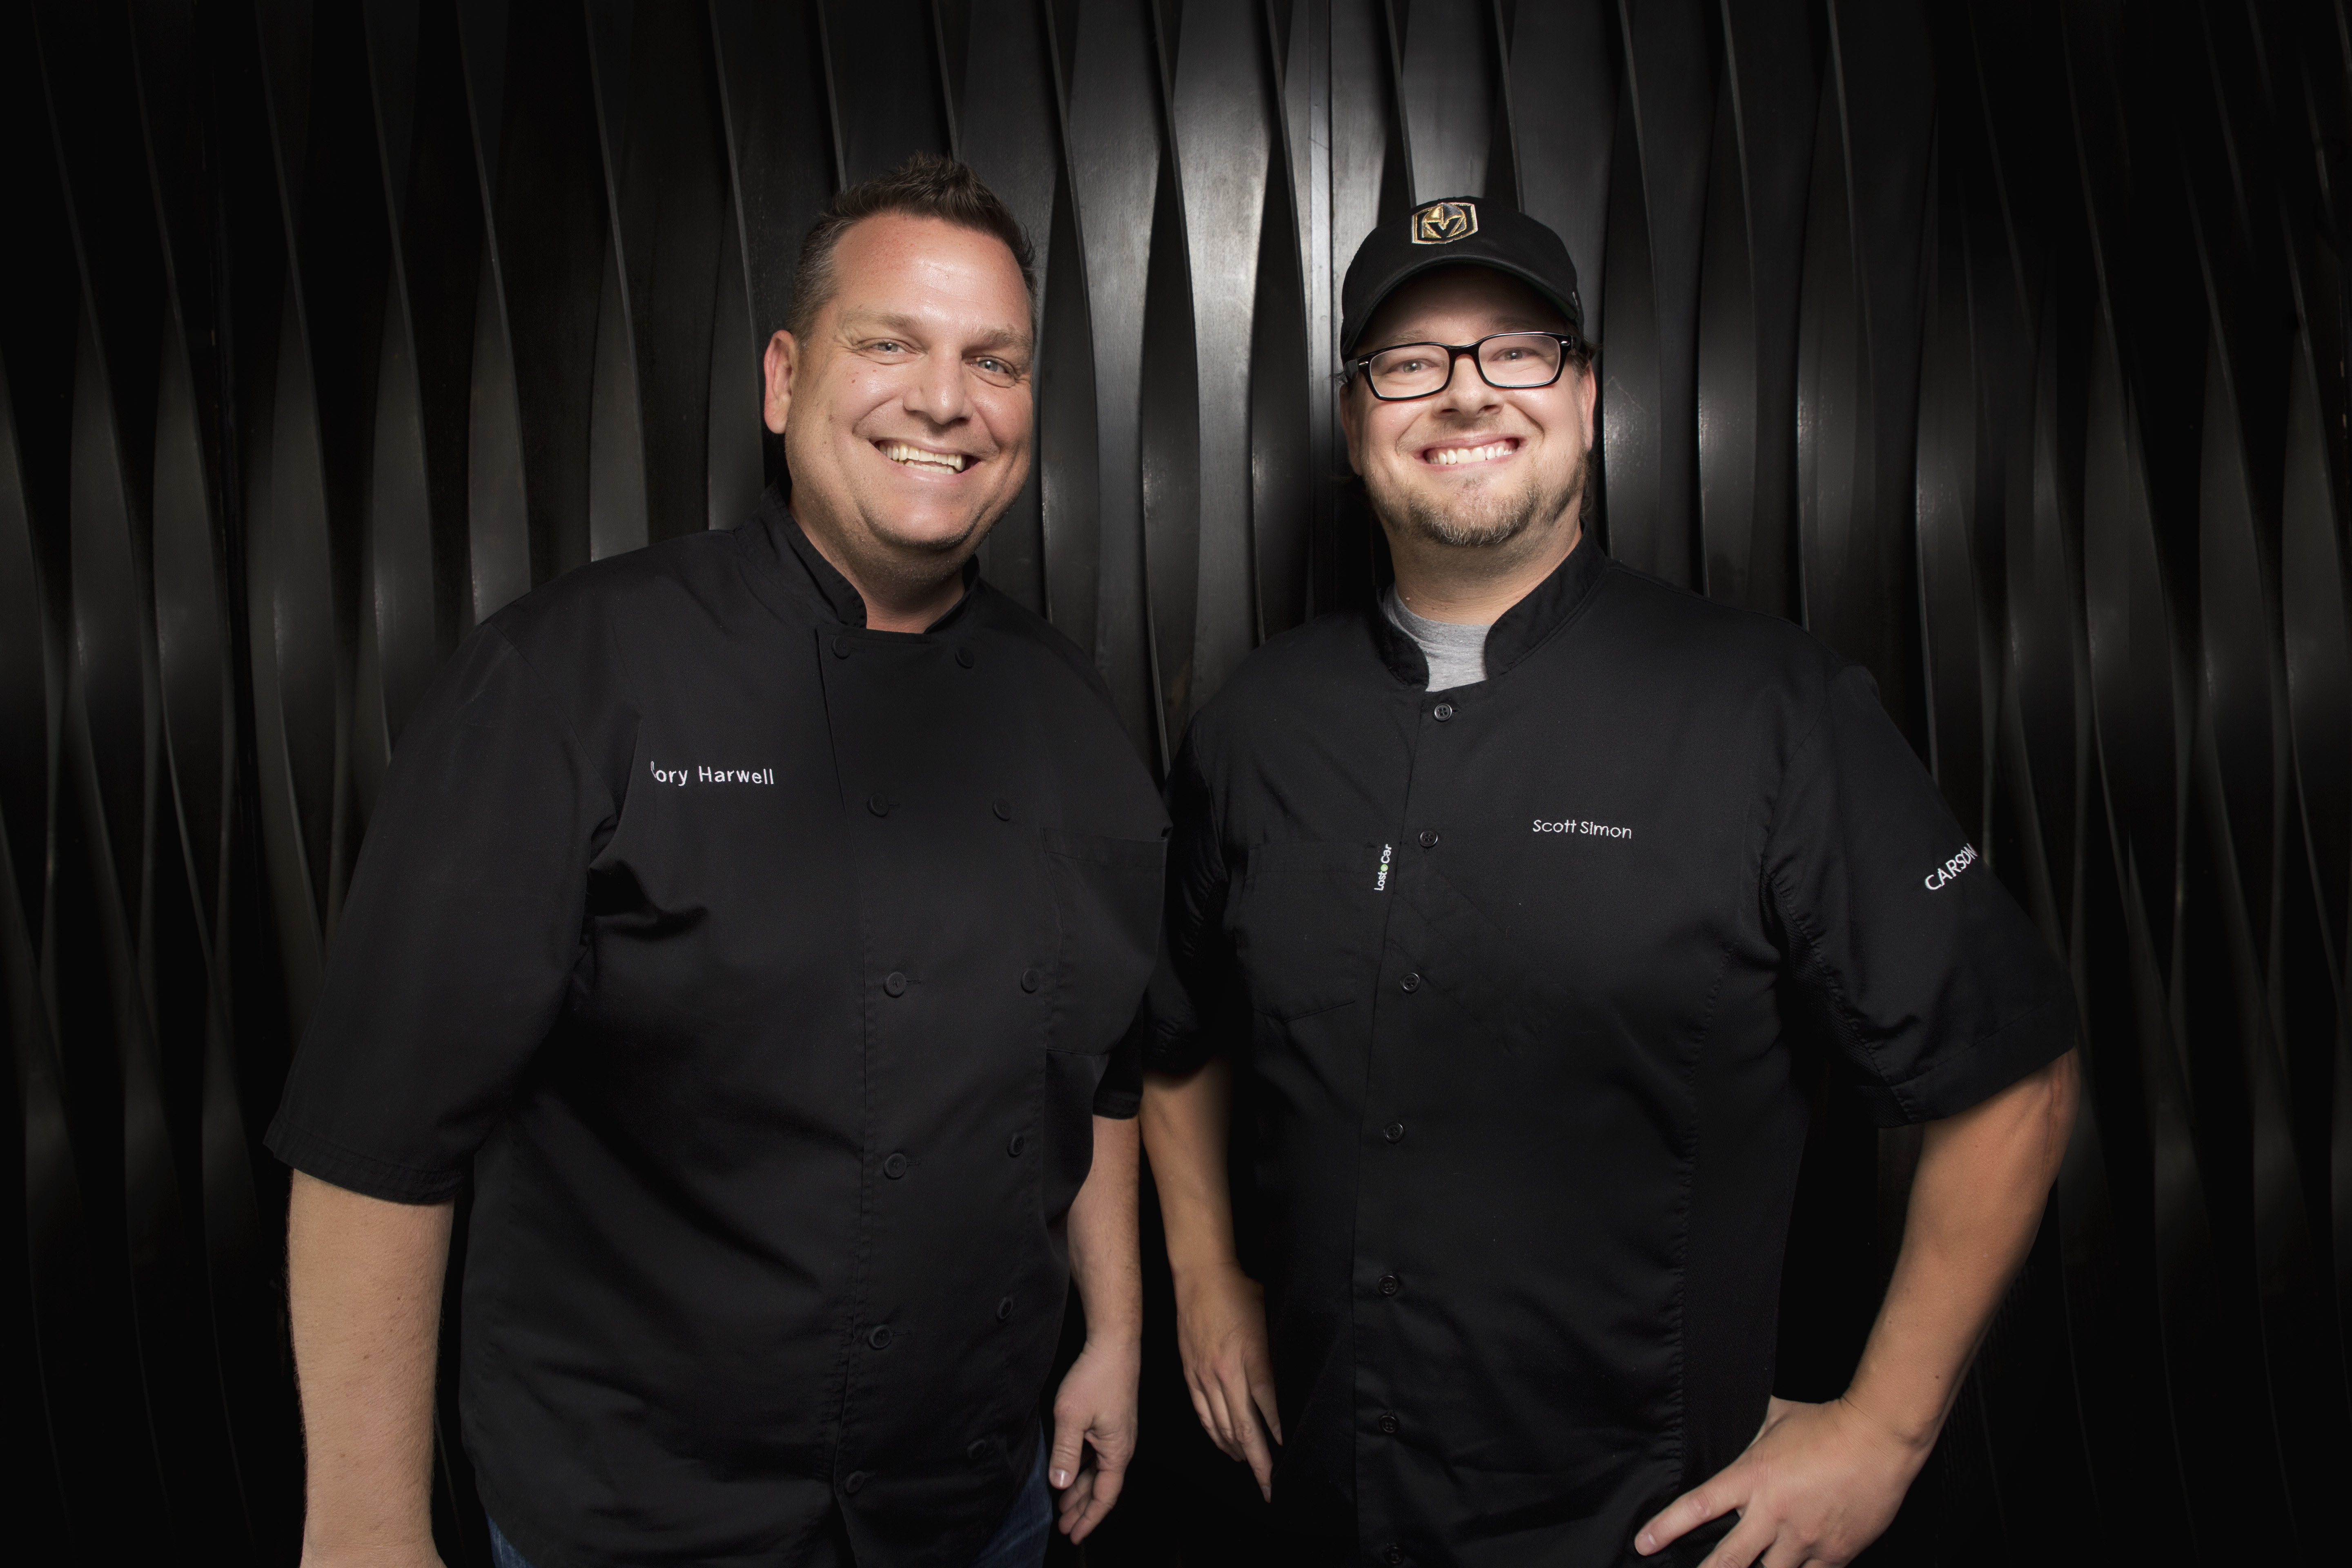 Cory Harwell, left, and Scott Simon lead the charge at Carson Kitchen